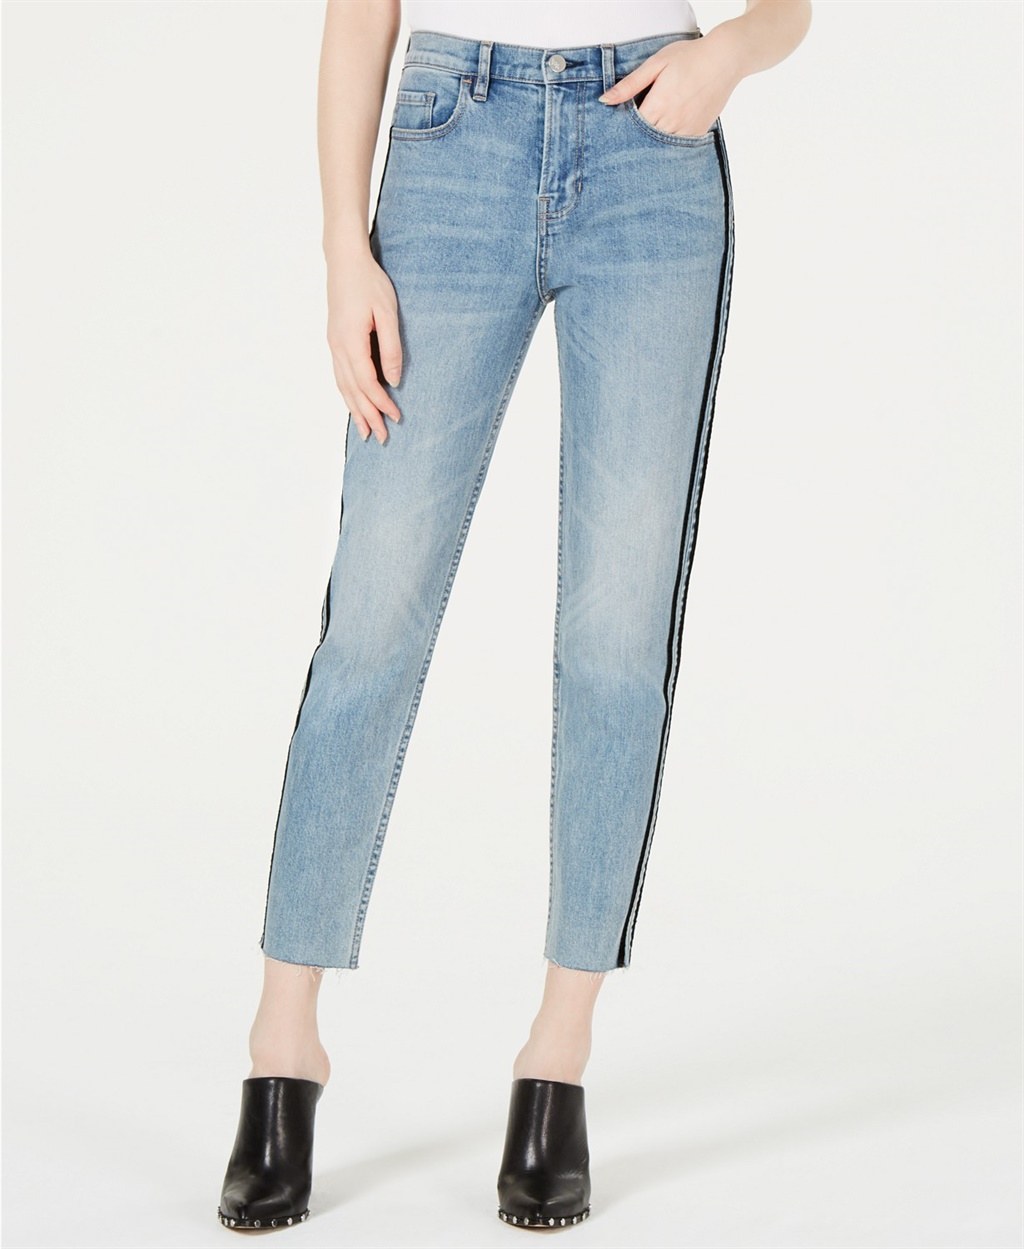 06a5ffa5063bc Kendall and Kylie Jenner release denim range – here are 5 pairs in ...